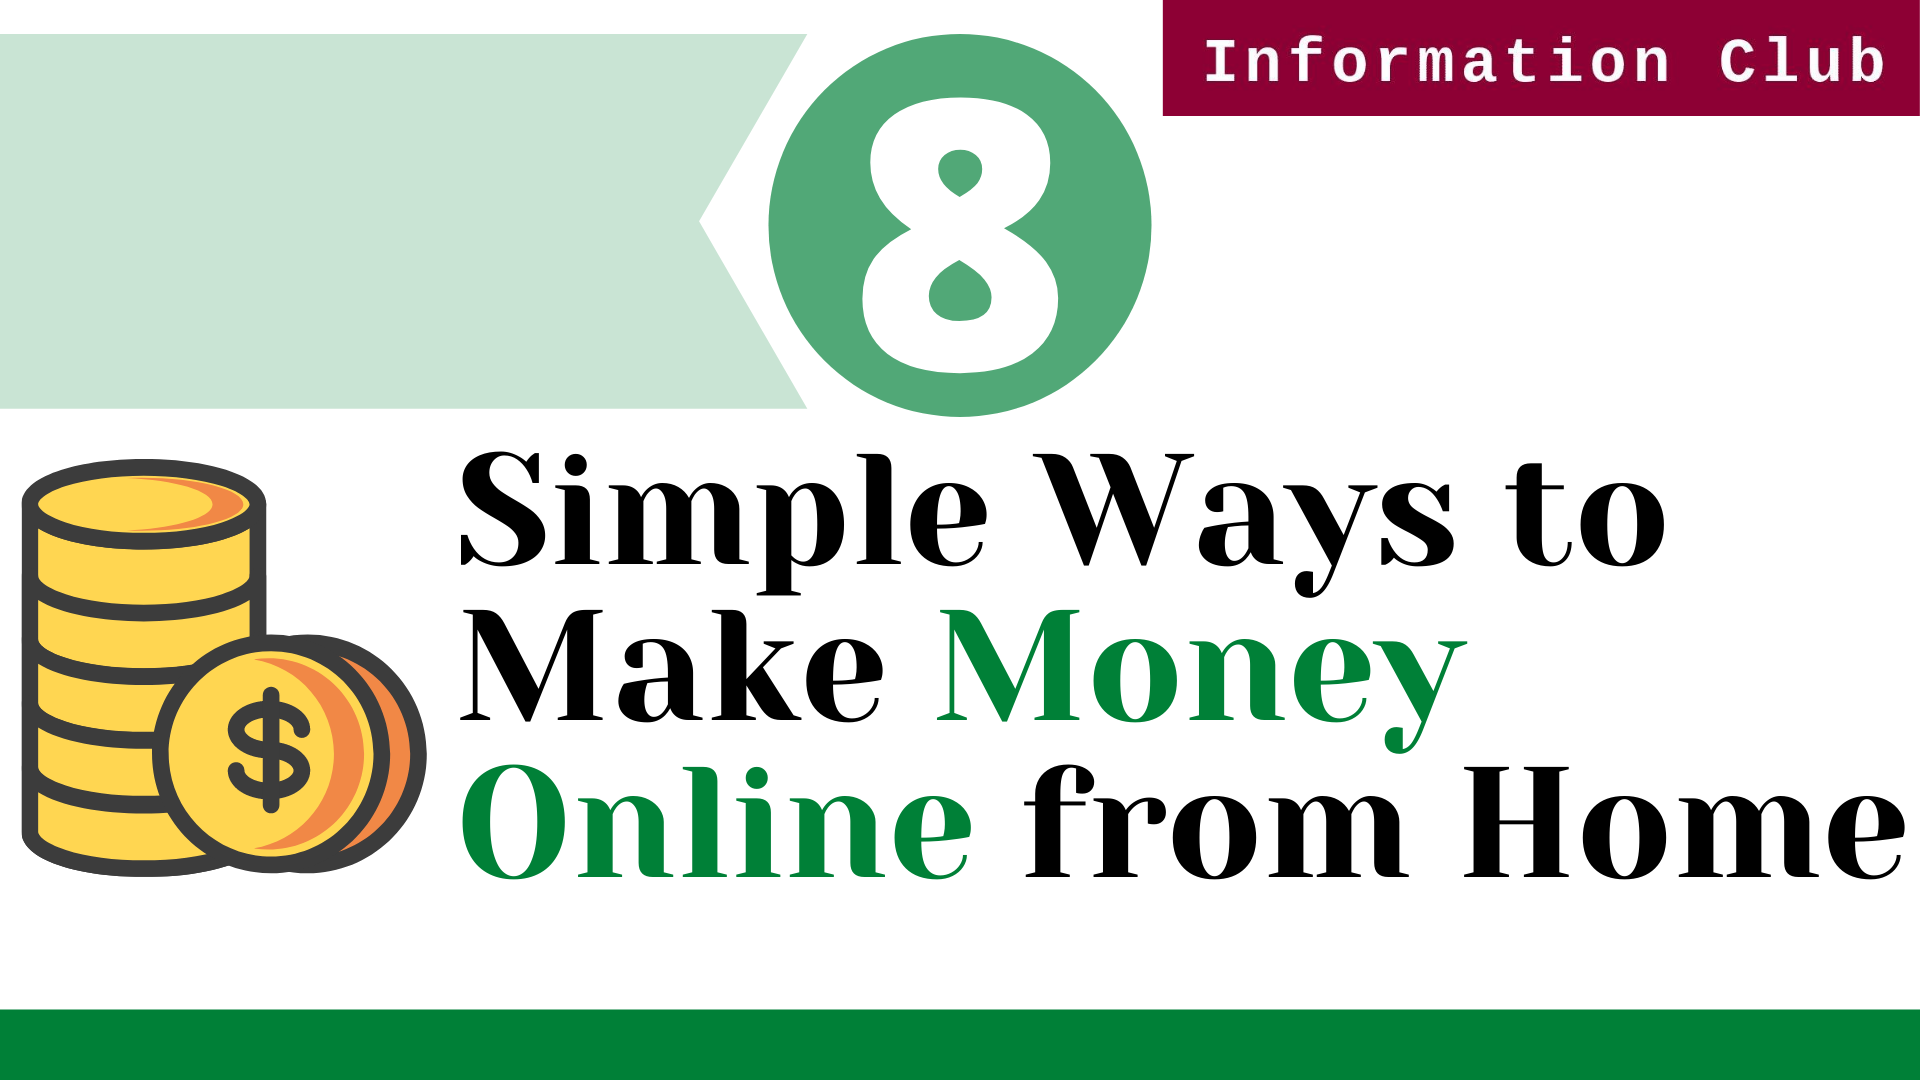 https://www.clubinfonline.com/2020/04/04/8-simple-ways-to-make-money-online-from-home-2020-guide/